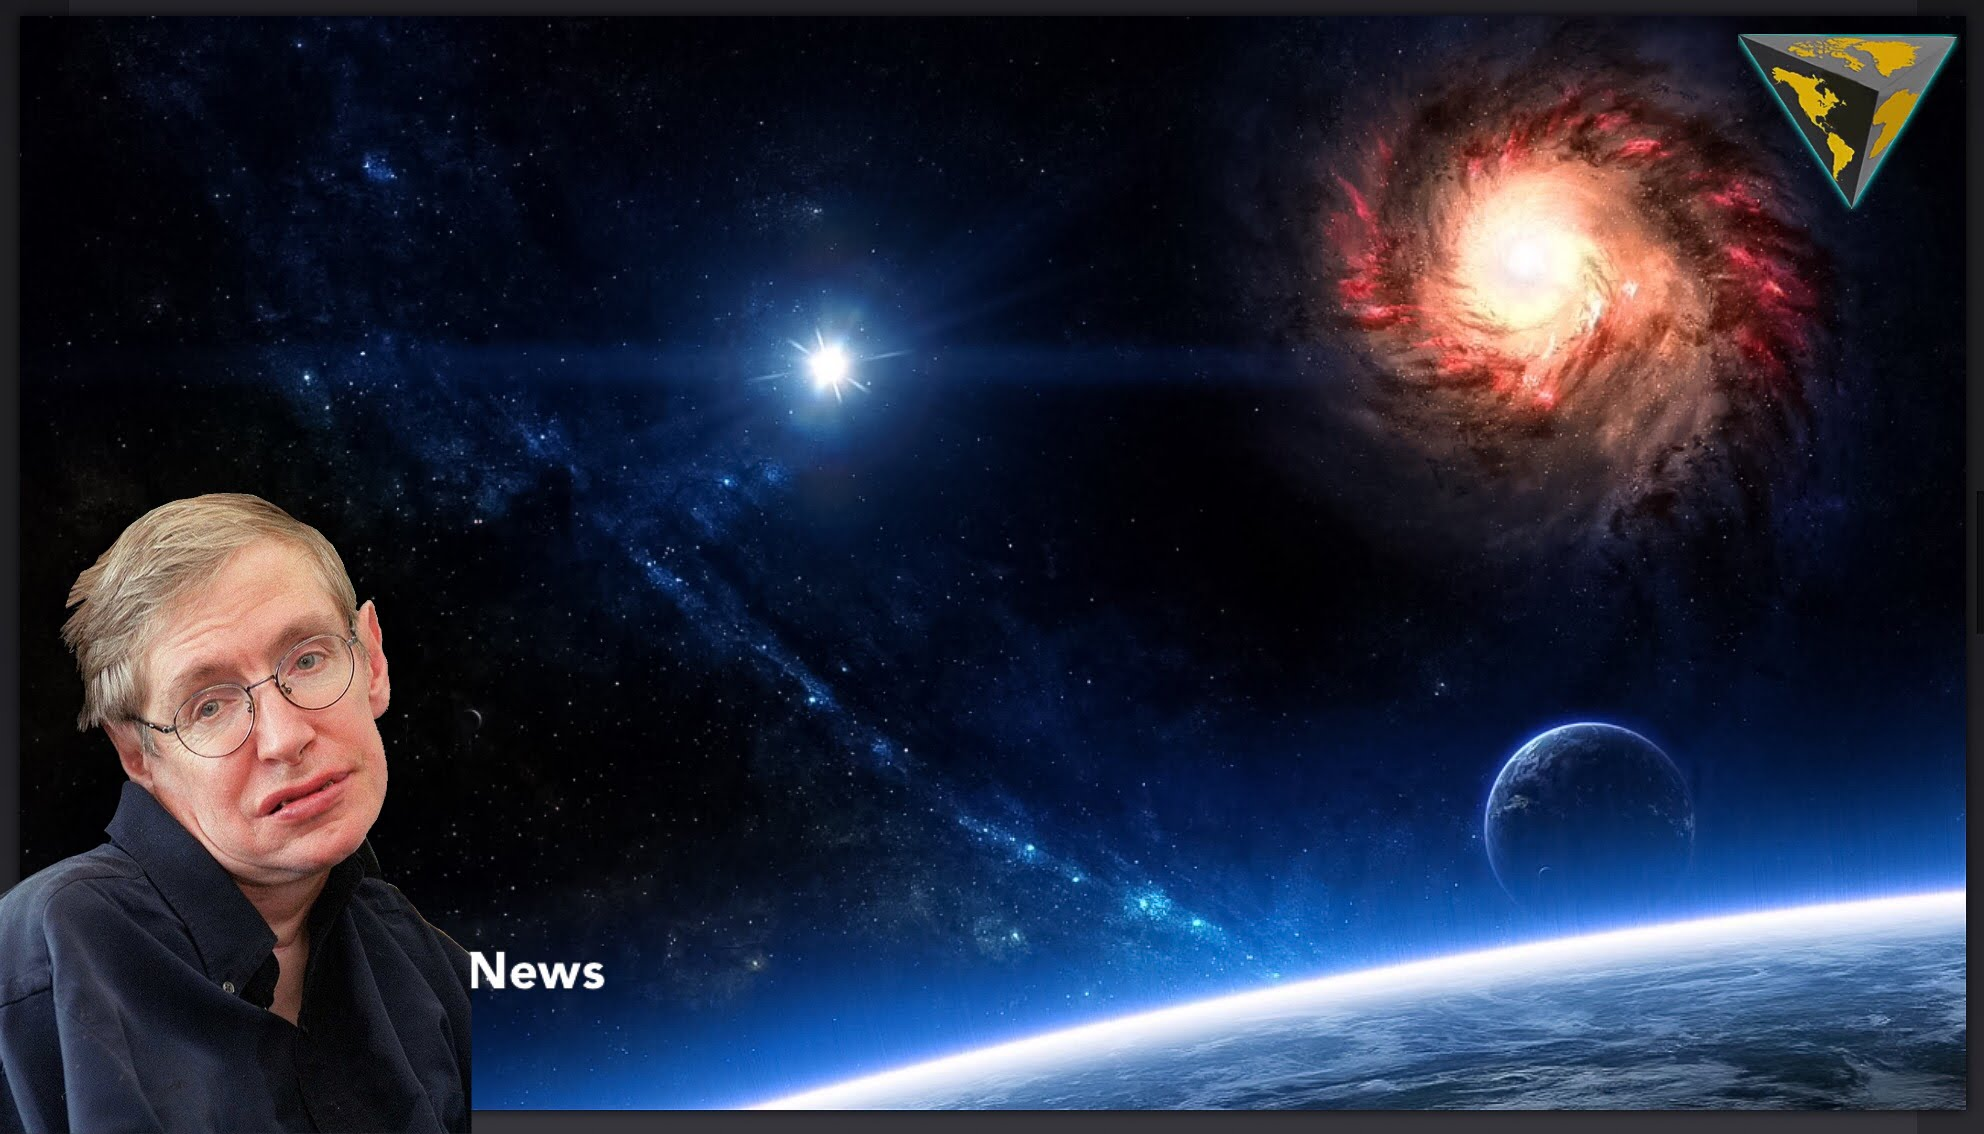 Animated Hd Wallpapers For Laptop Stephen Hawking Wallpaper